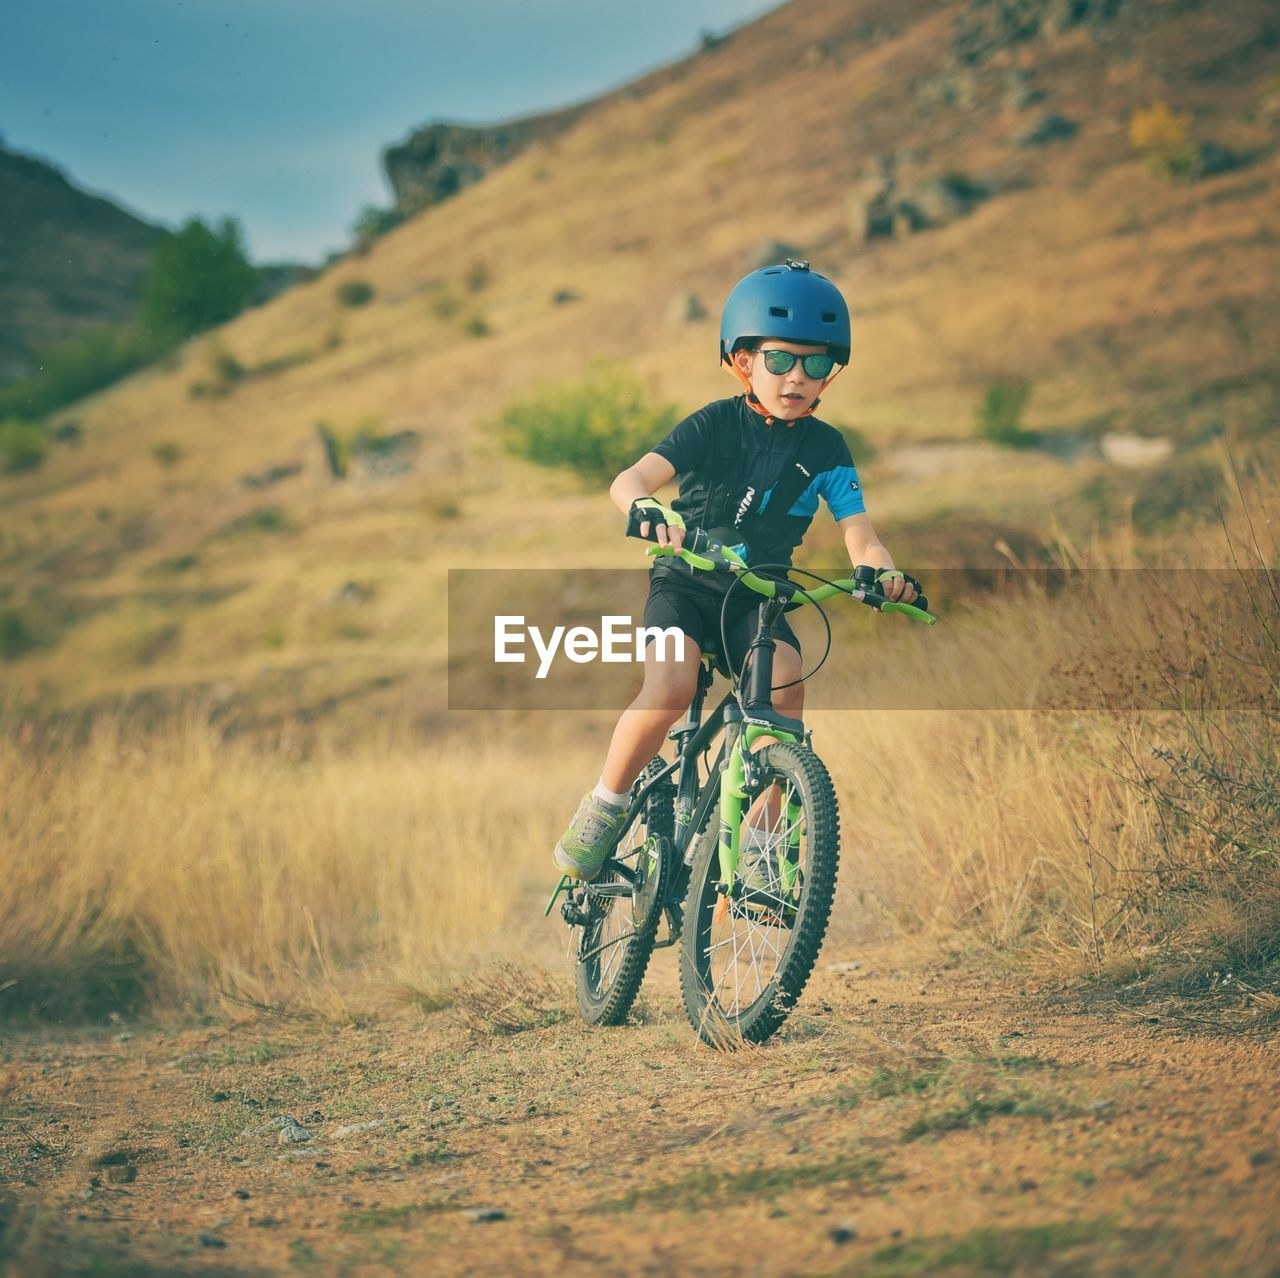 one person, real people, field, headwear, helmet, land, leisure activity, lifestyles, riding, transportation, bicycle, ride, day, nature, land vehicle, plant, mode of transportation, child, outdoors